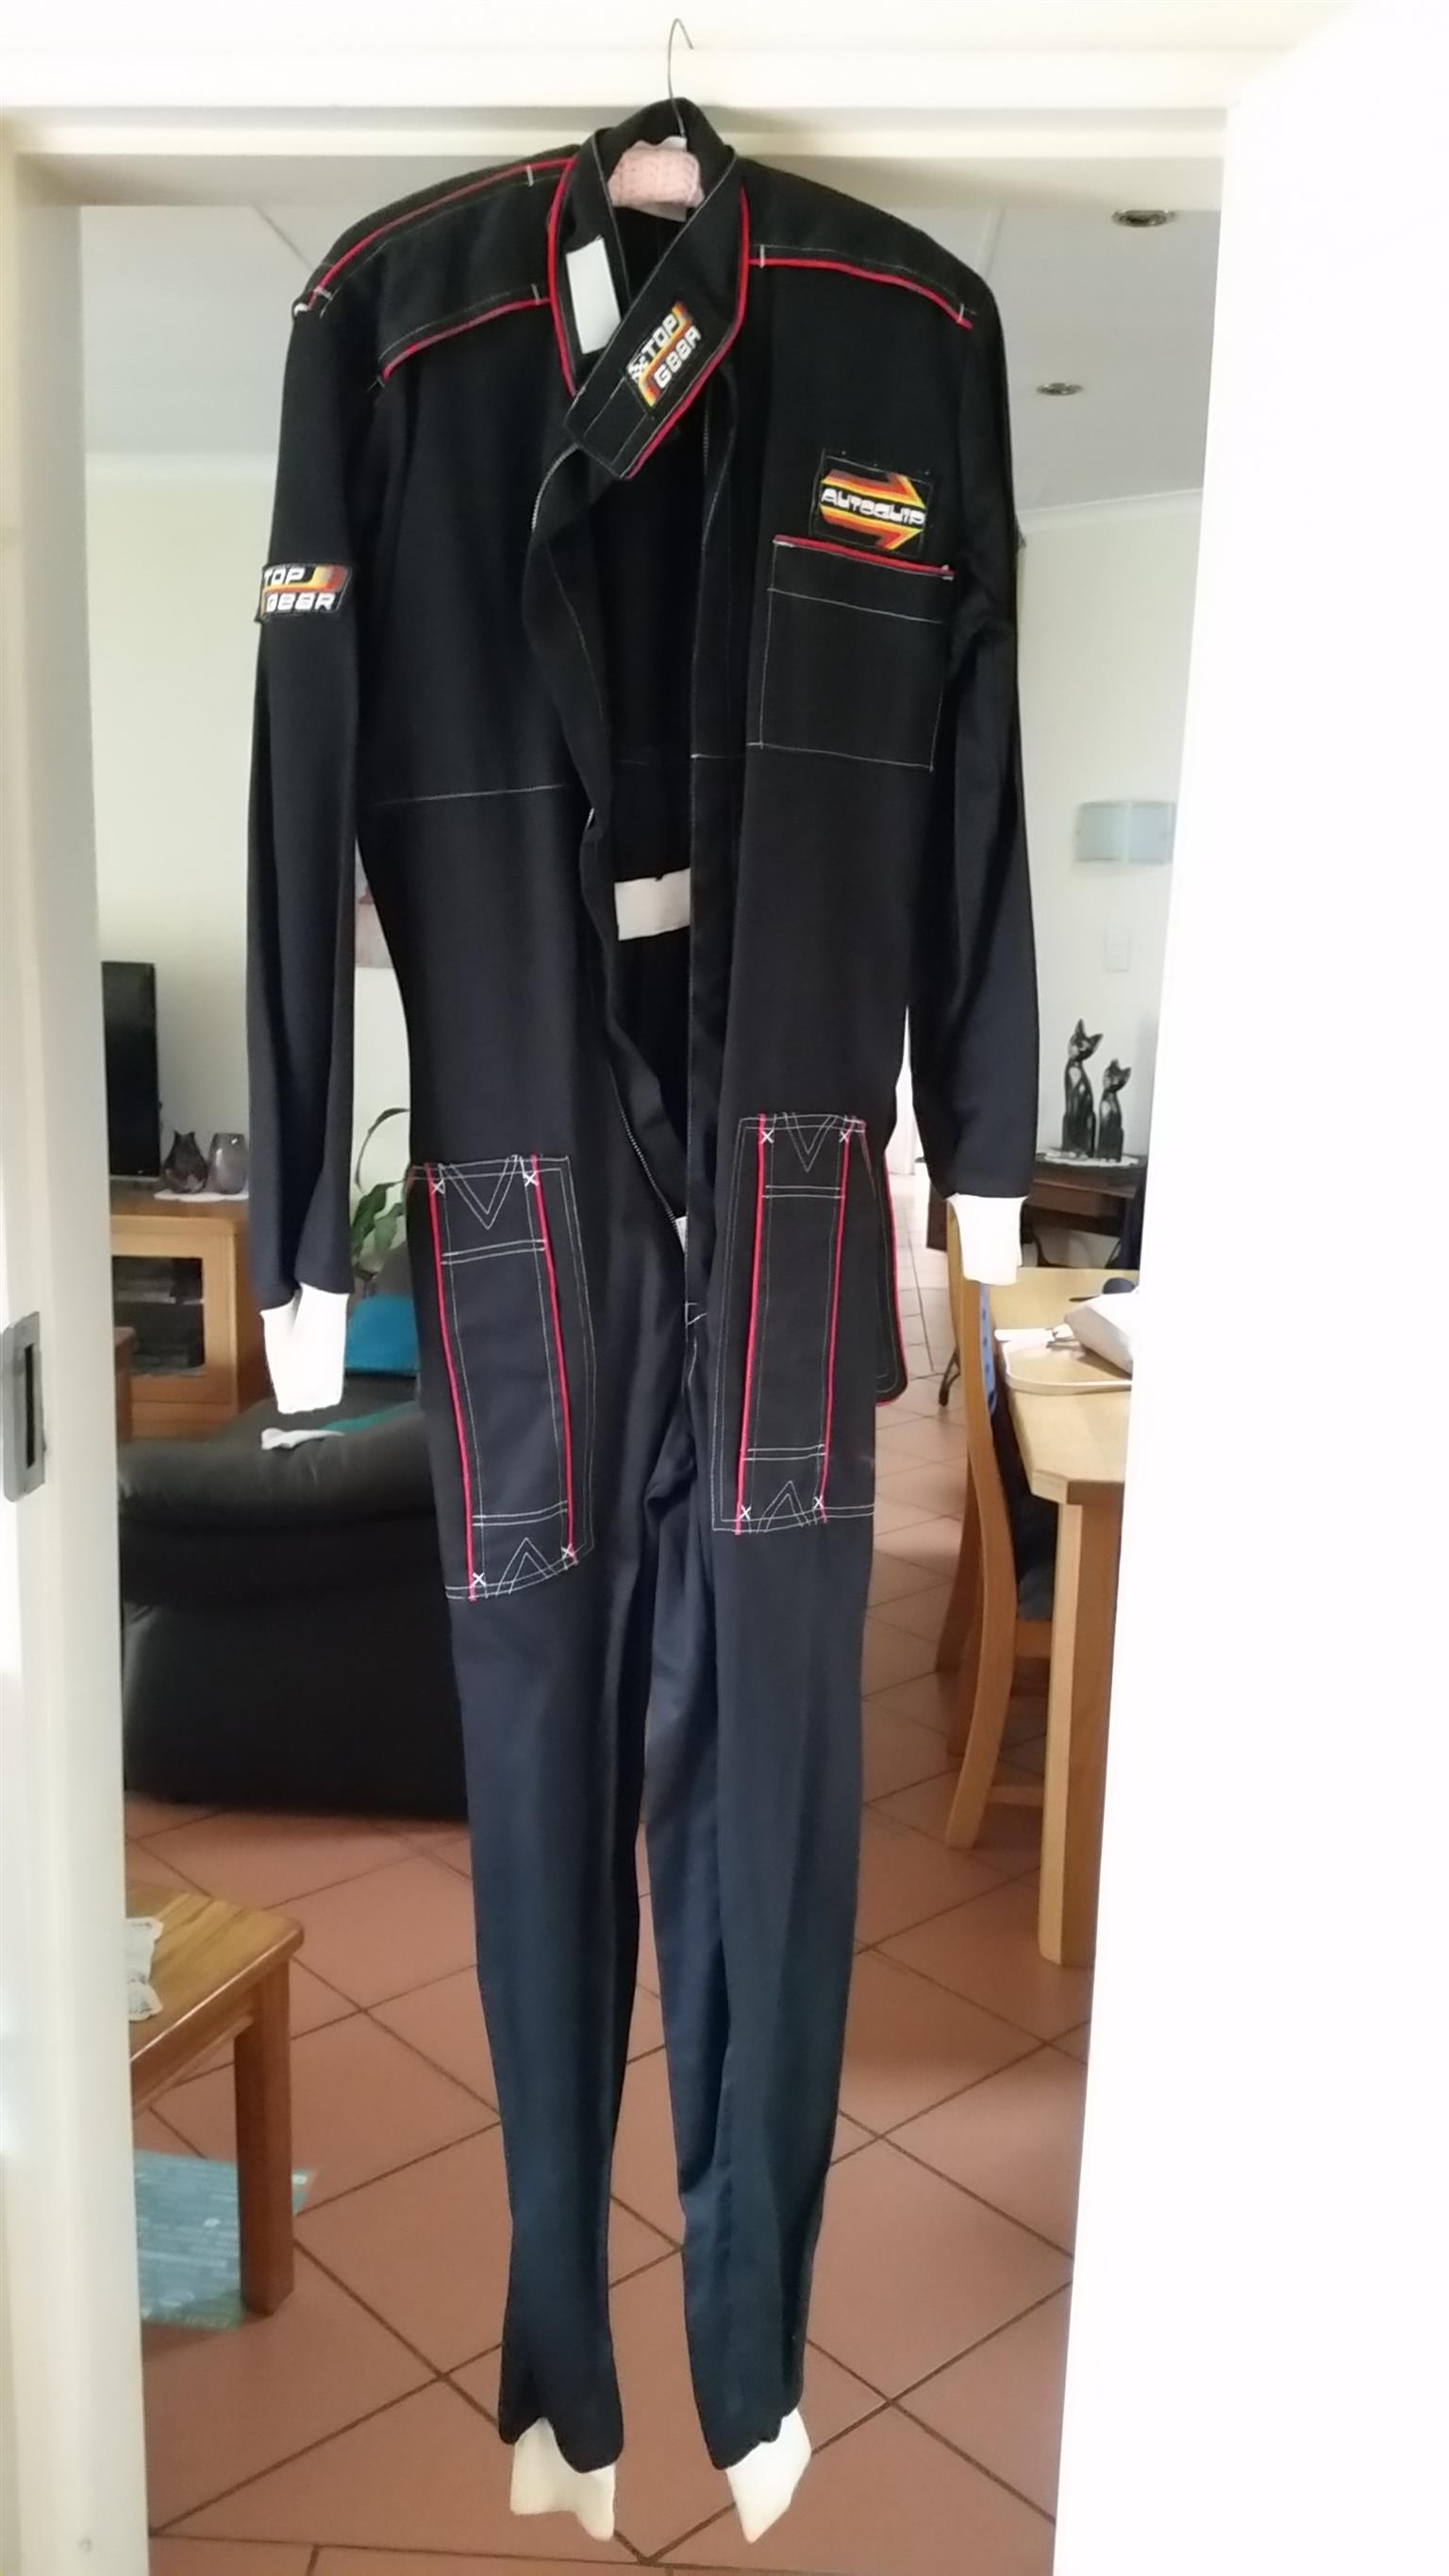 Drivers Racing Suit